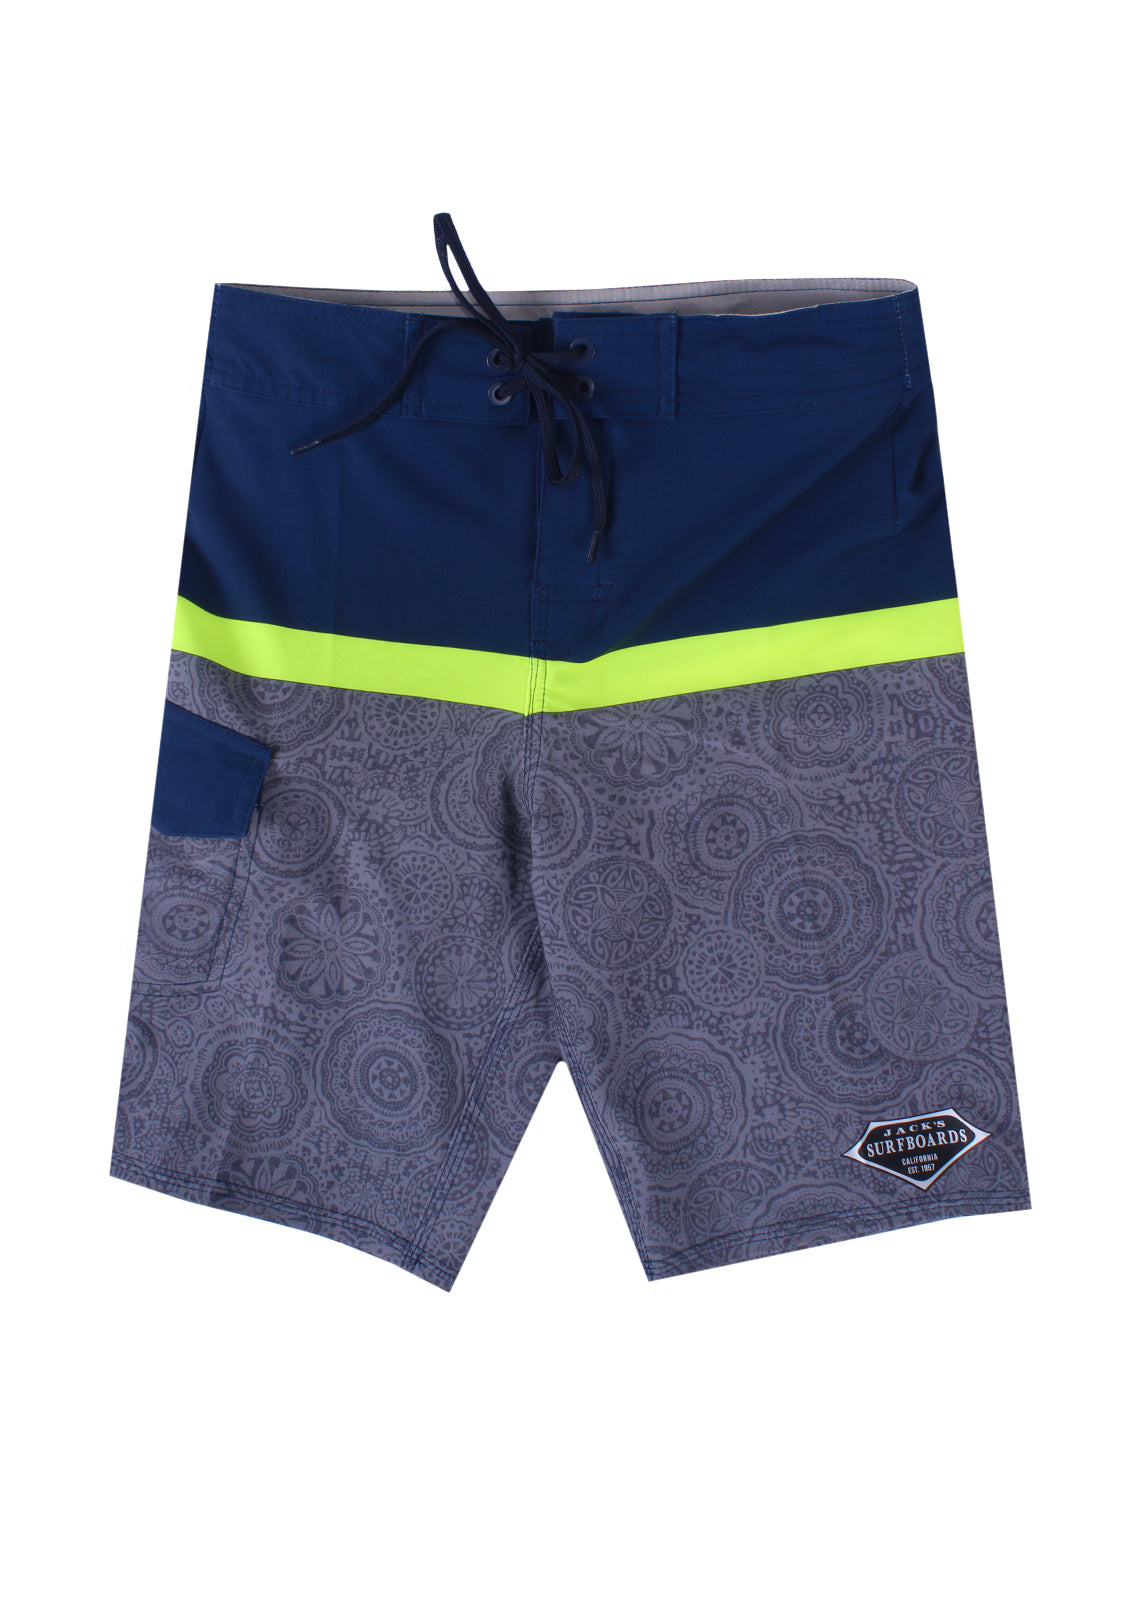 Jacks Surfboard Boys Karma Boardshort